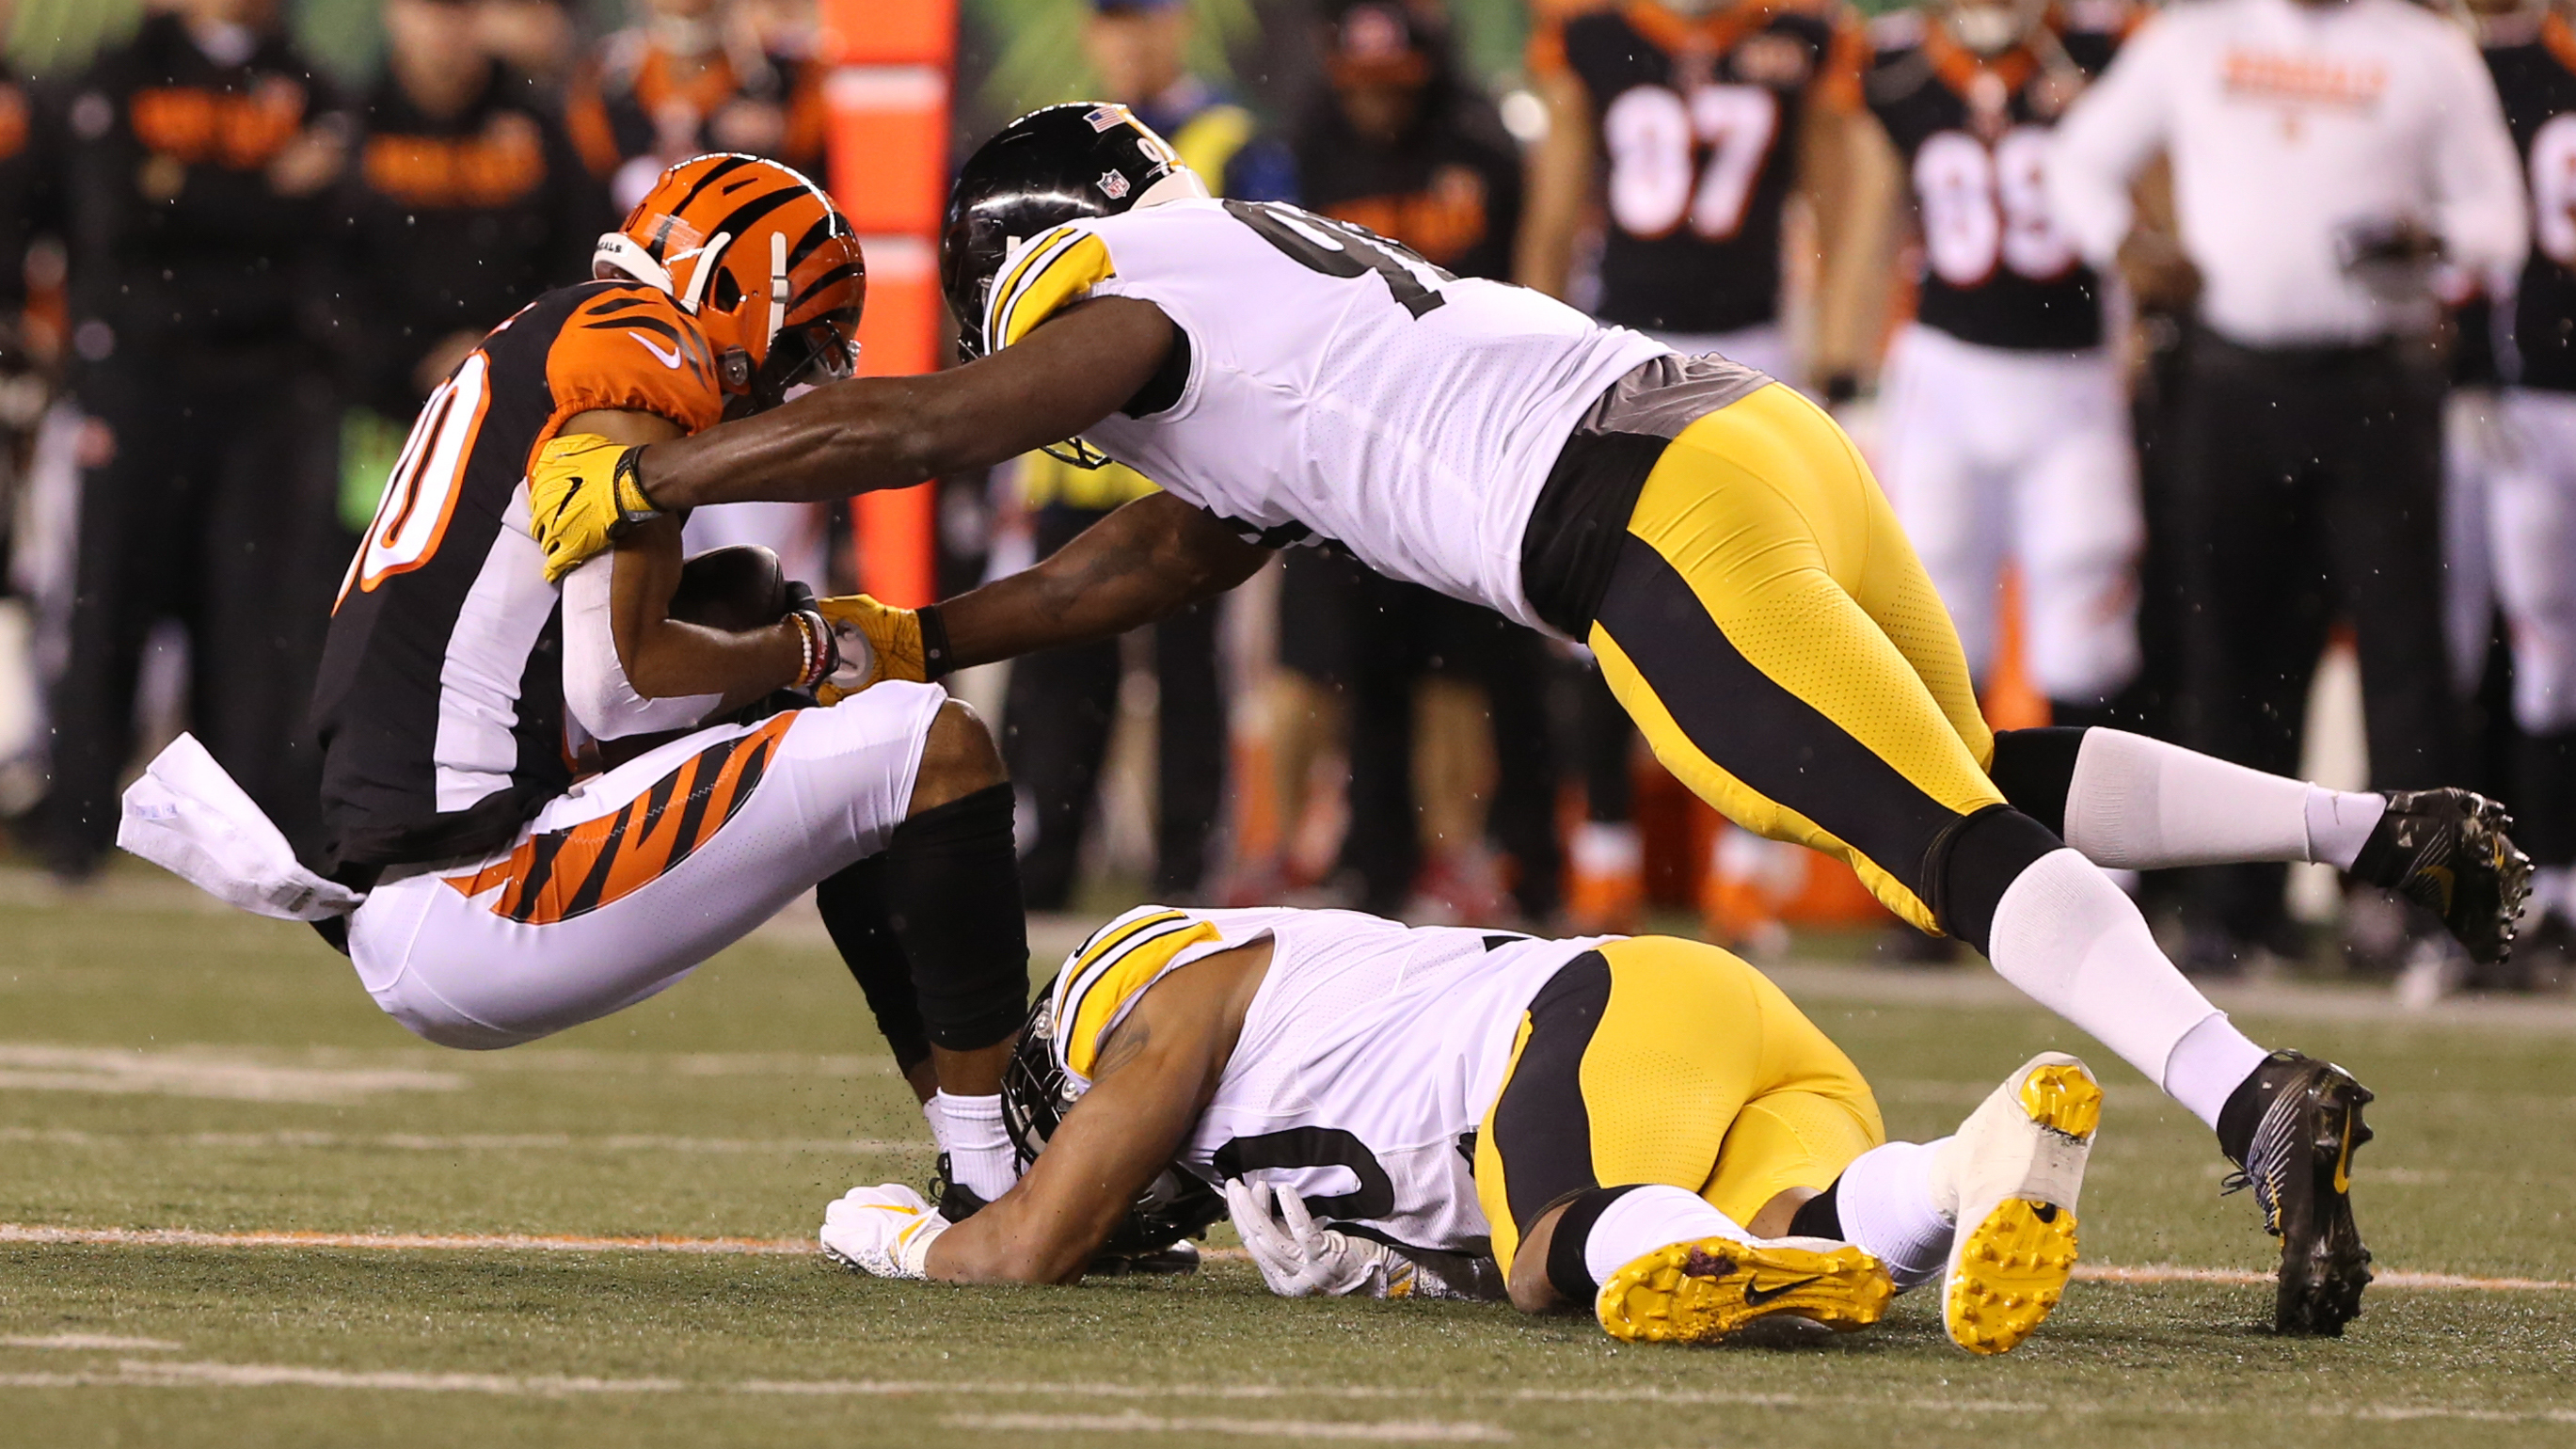 Ryan Shazier, Vontaze Burfict and the alluring violence of